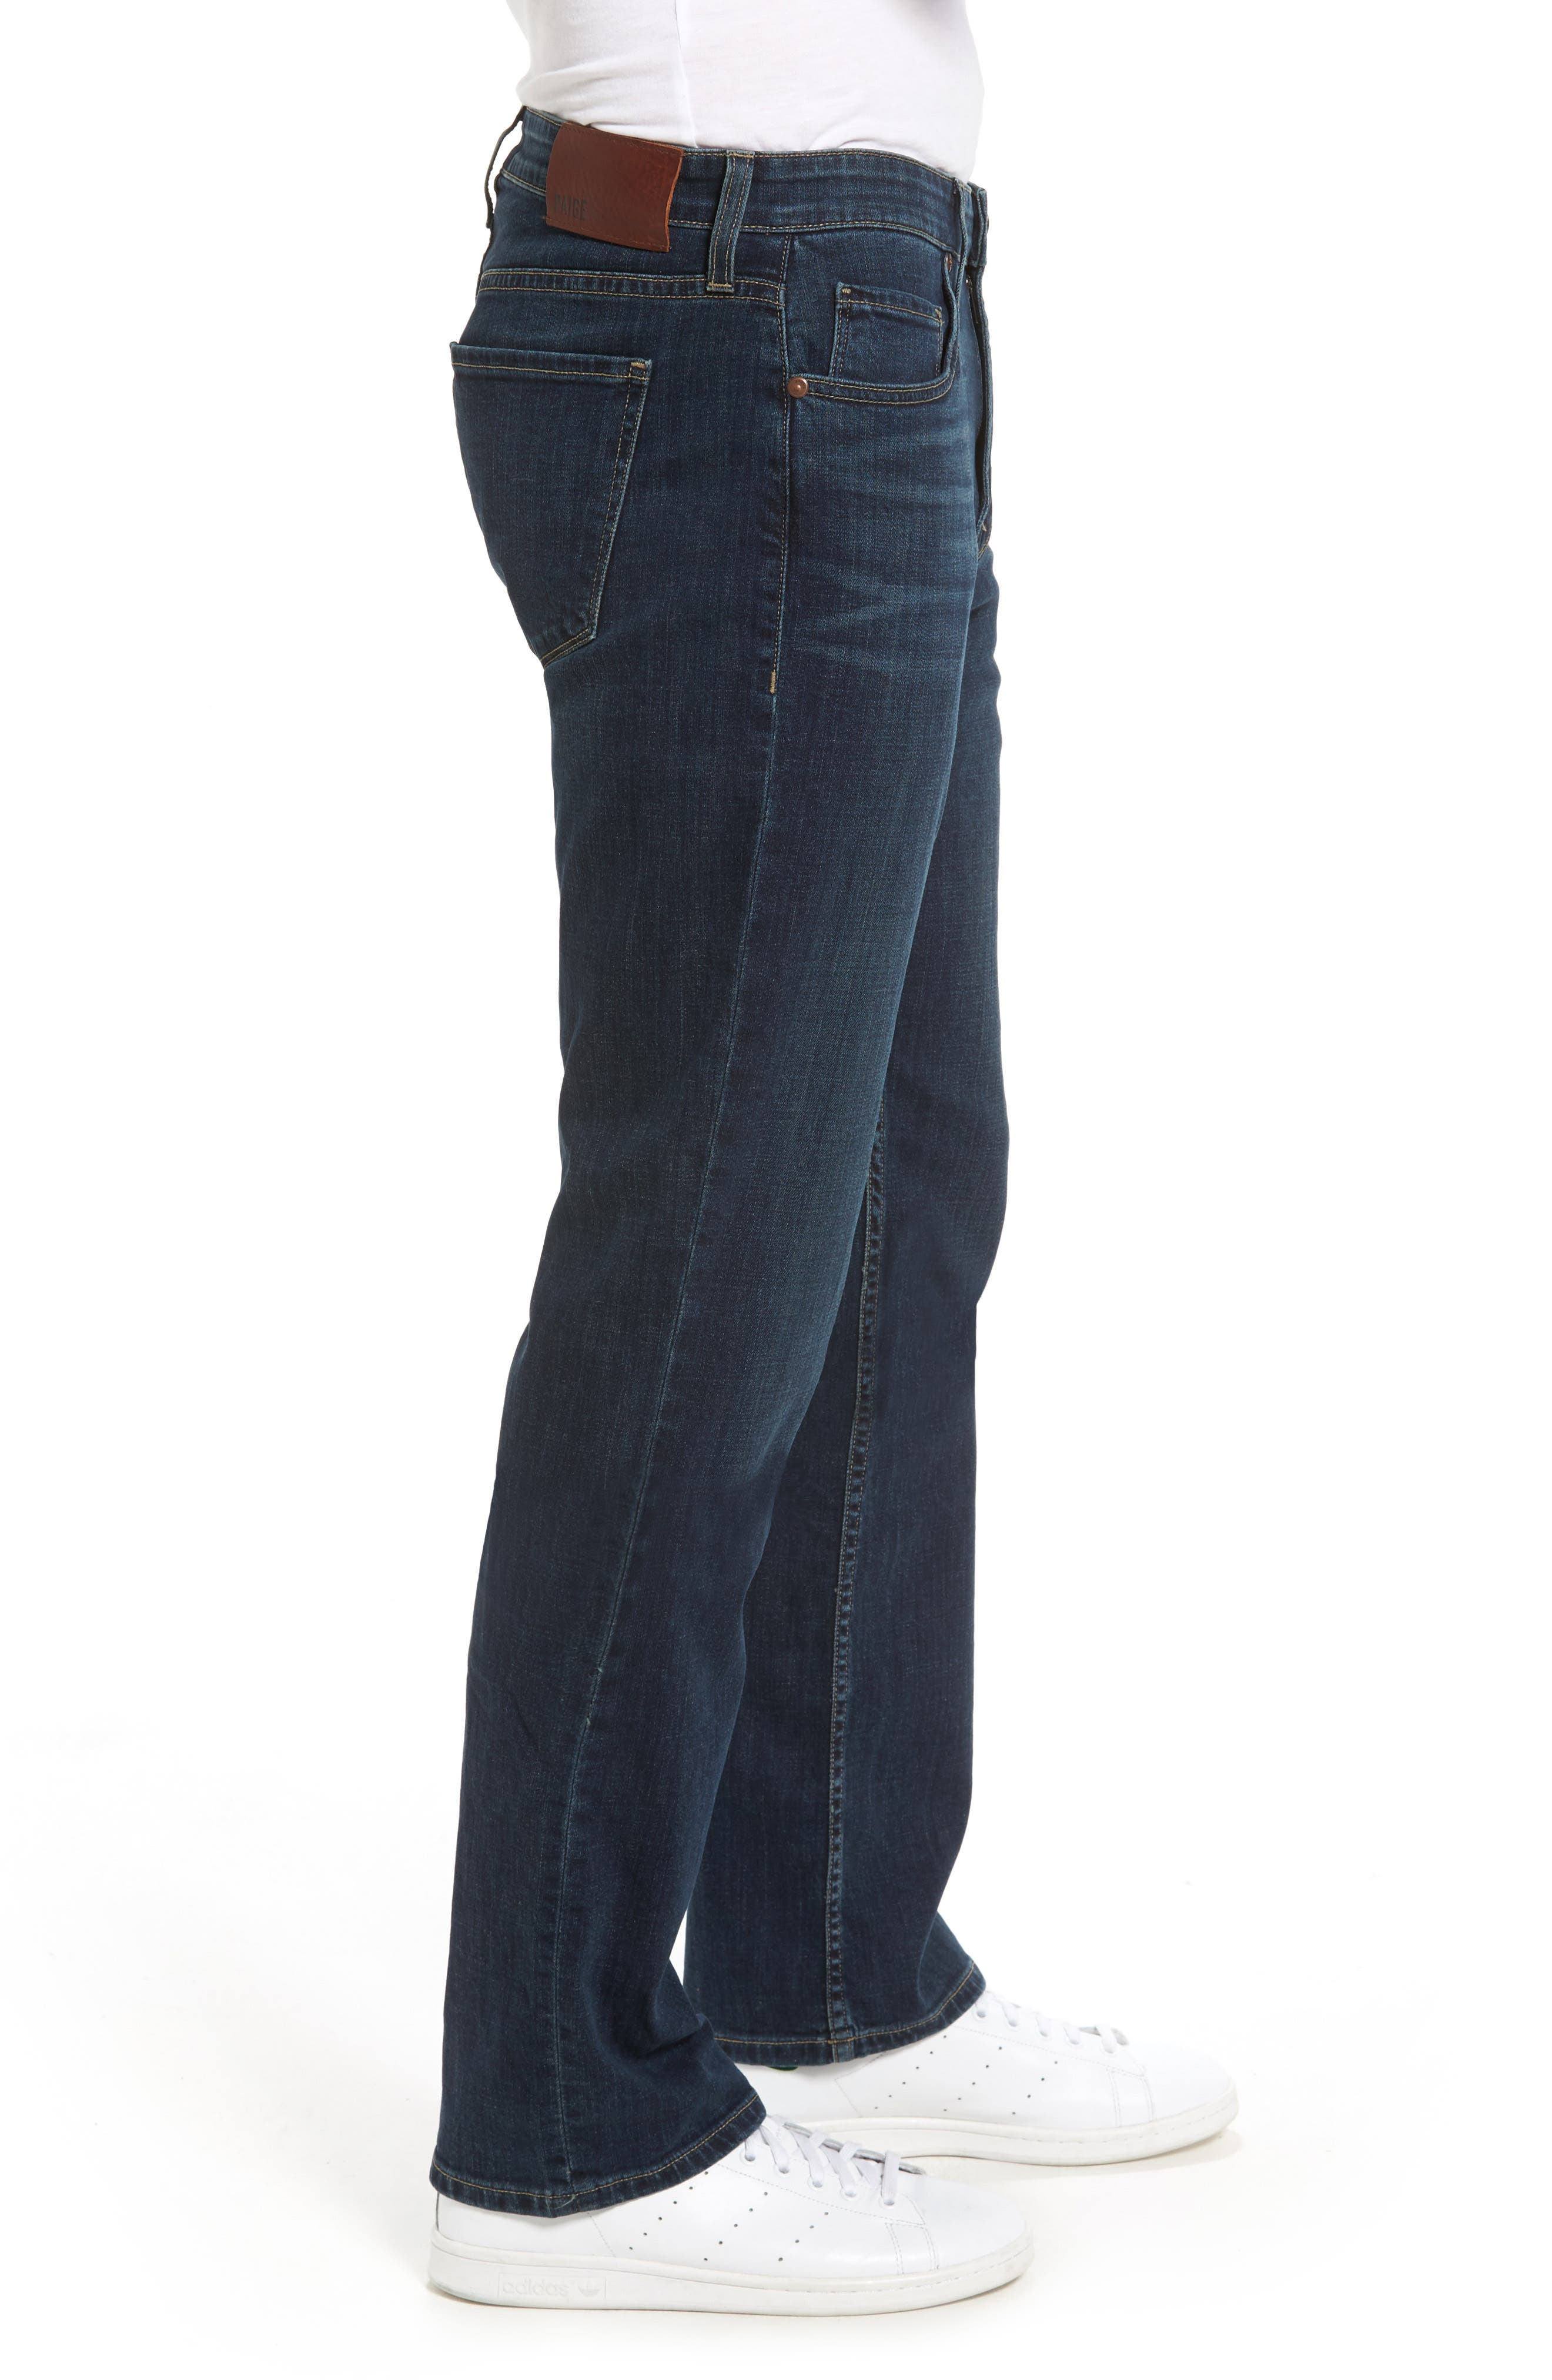 Doheny Relaxed Fit Jeans,                             Alternate thumbnail 3, color,                             Knowle